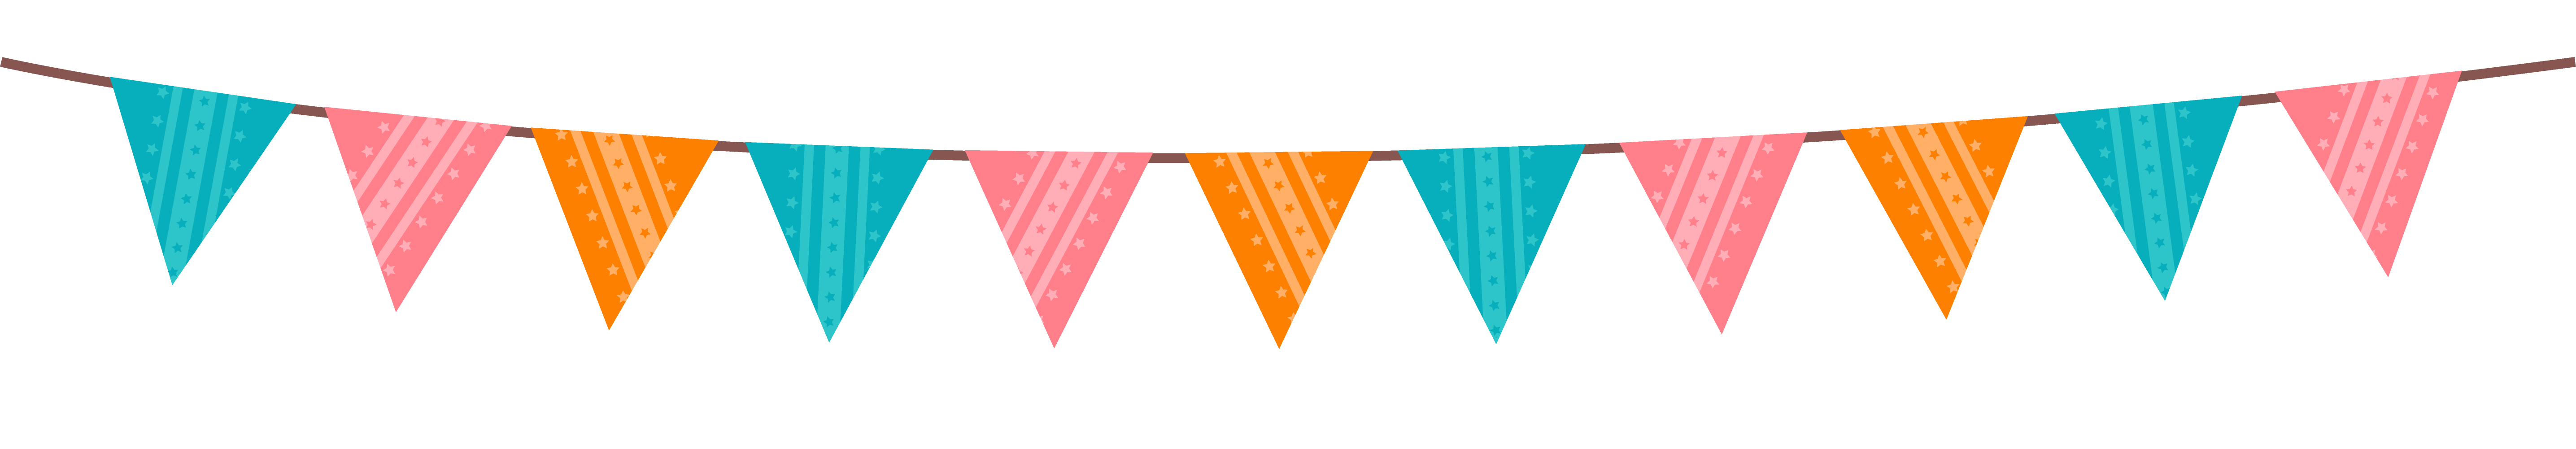 Birthday-decorations-in-different-colors 1.png